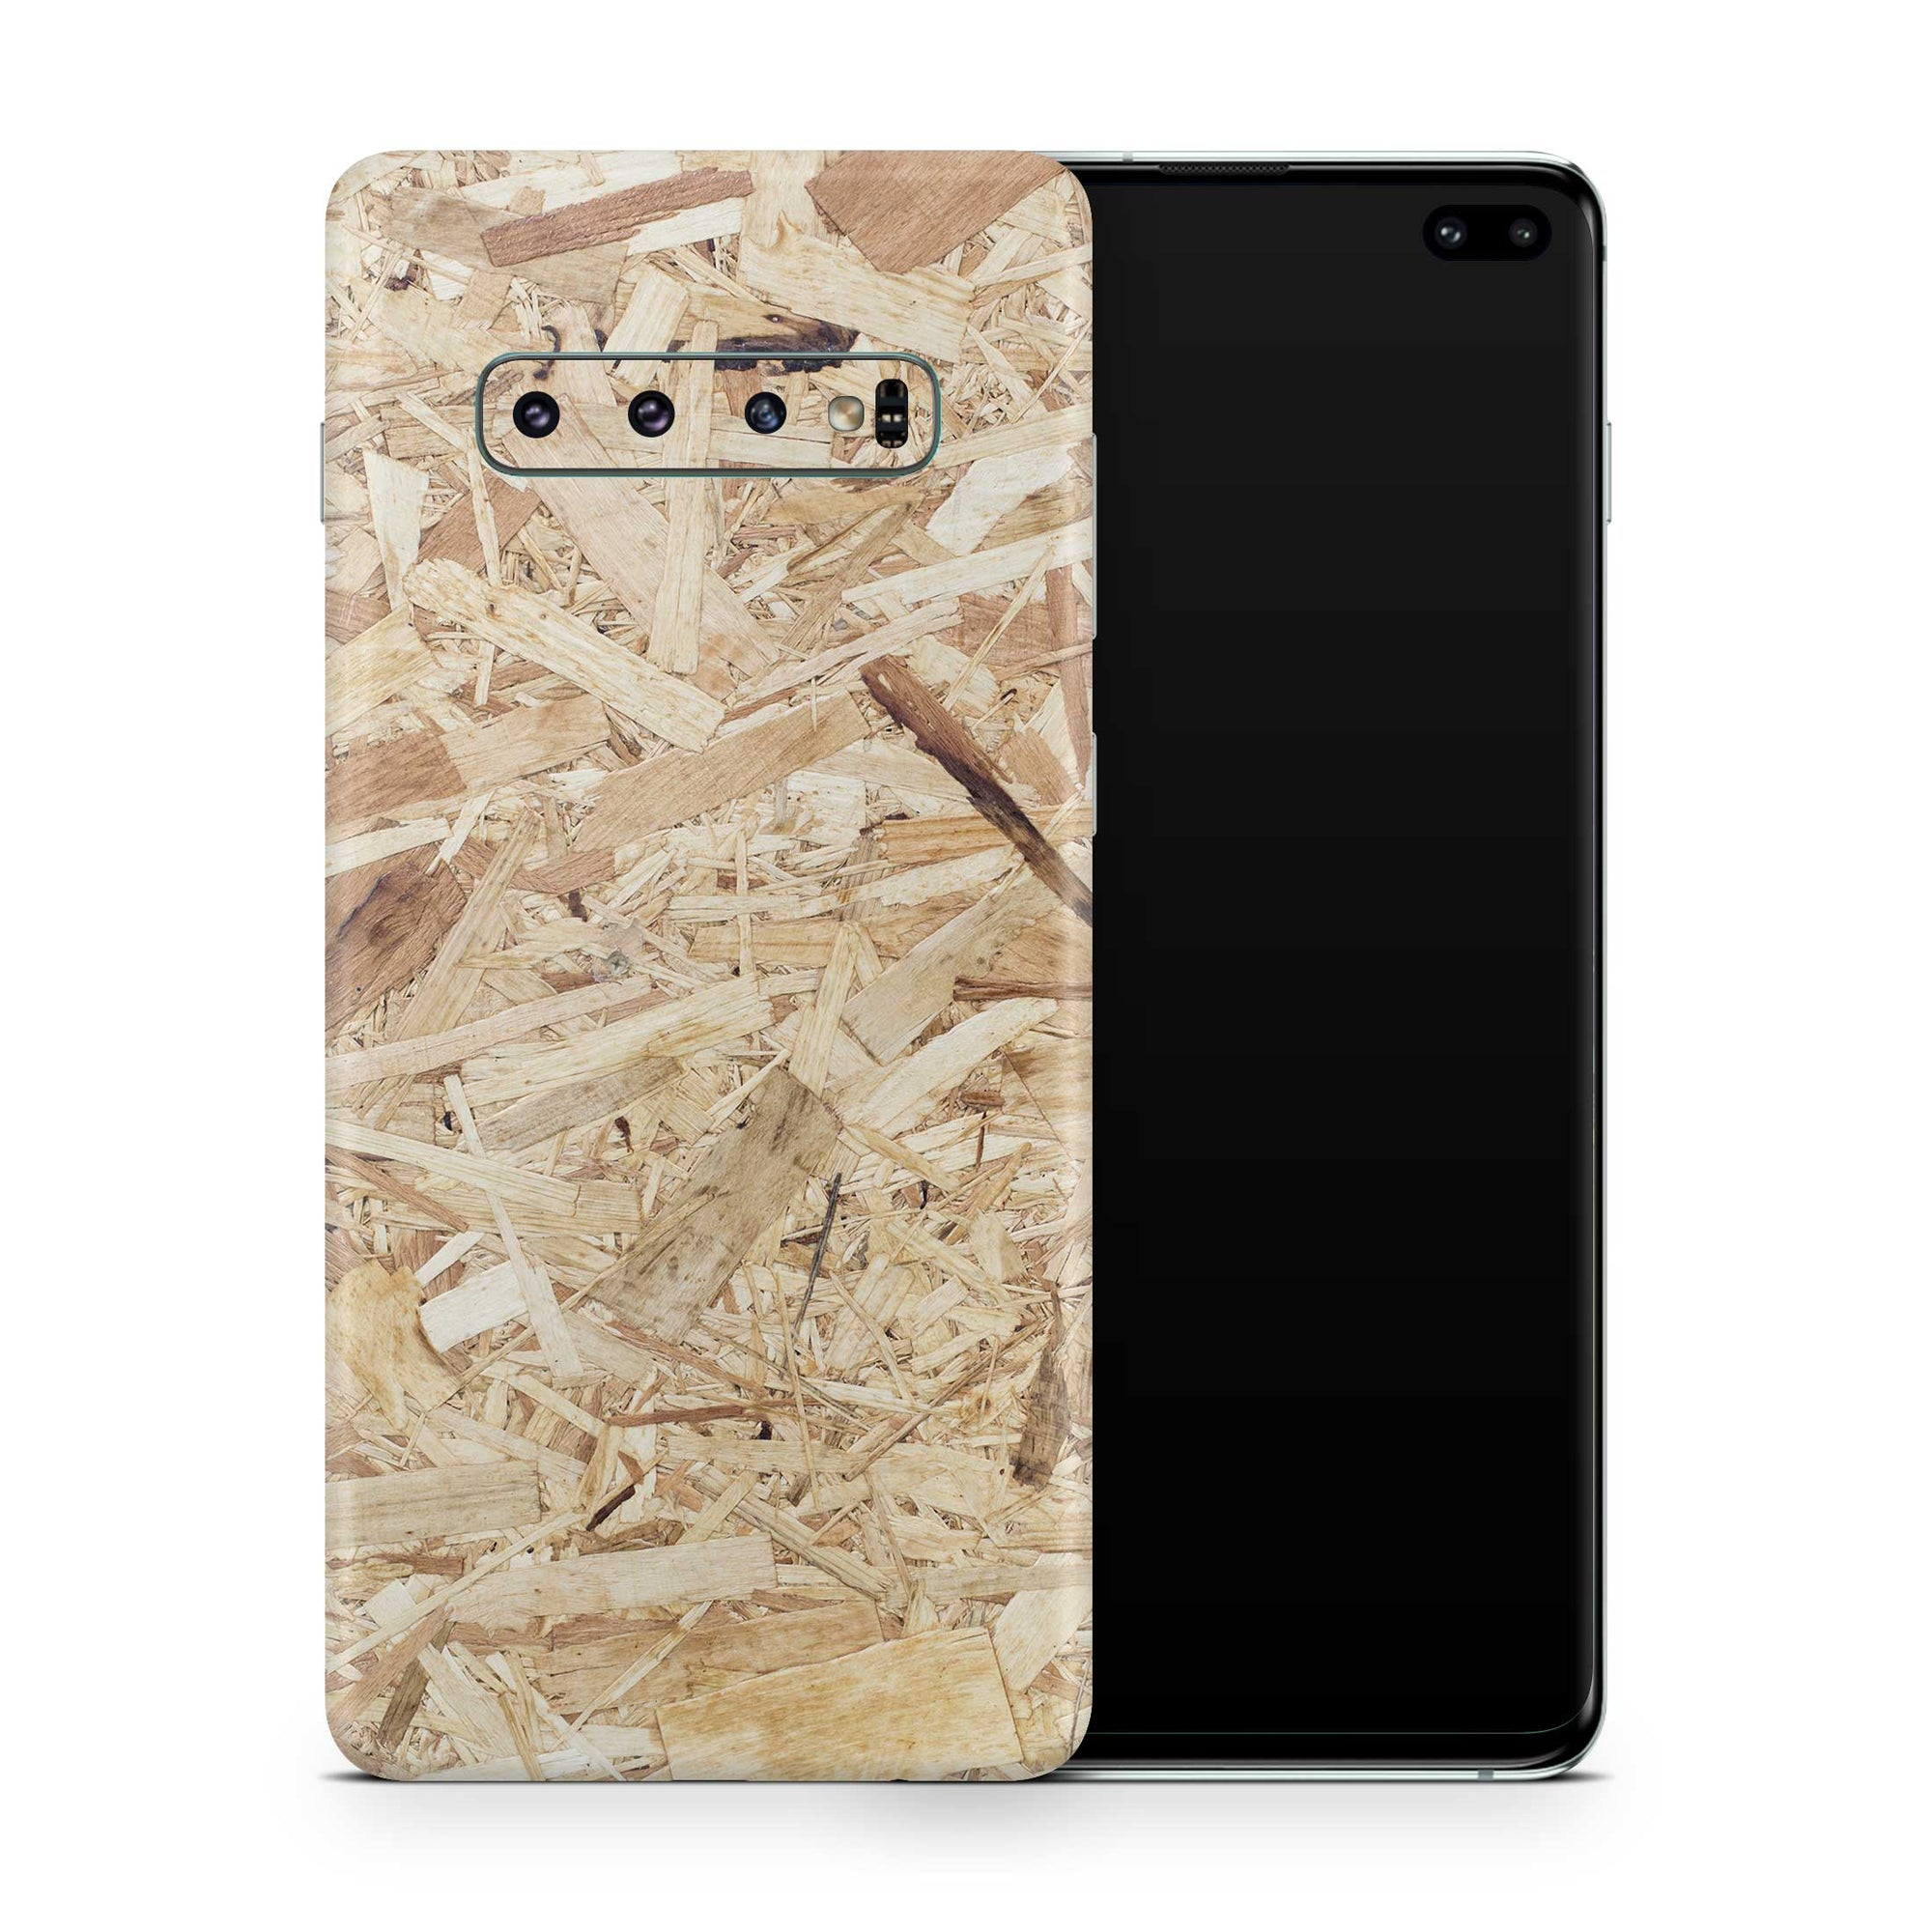 Plywood S10 Plus Skin